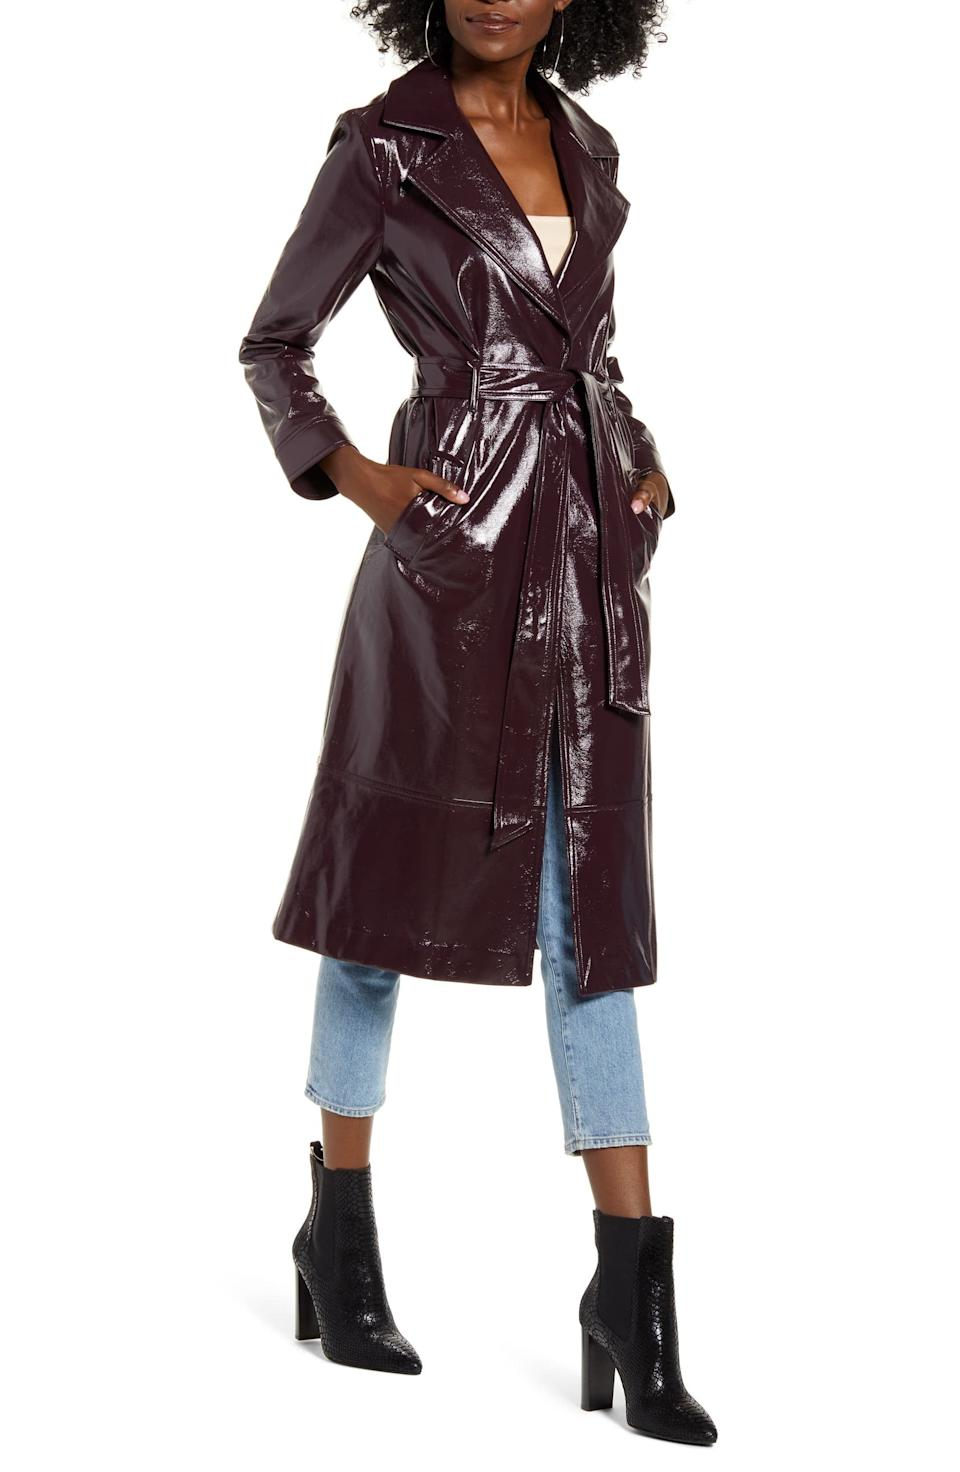 """<h3><a href=""""https://shop.nordstrom.com/s/leith-faux-patent-leather-trench-coat/5001018/lite"""" rel=""""nofollow noopener"""" target=""""_blank"""" data-ylk=""""slk:Leith Faux Patent Leather Trench Coat"""" class=""""link rapid-noclick-resp"""">Leith Faux Patent Leather Trench Coat</a></h3><br><a href=""""https://refinery29.com/en-us/clothing-essentials-what-to-buy-2020#slide-1"""" rel=""""nofollow noopener"""" target=""""_blank"""" data-ylk=""""slk:Trench coats"""" class=""""link rapid-noclick-resp"""">Trench coats</a> made the cut or <a href=""""https://refinery29.com/en-us/clothing-essentials-what-to-buy-2020"""" rel=""""nofollow noopener"""" target=""""_blank"""" data-ylk=""""slk:forecasted wardrobe essentials in 2020"""" class=""""link rapid-noclick-resp"""">forecasted wardrobe essentials in 2020</a>, with this faux-patent style securing an on-sale spot at the top of readers' carts. <br><br><strong>Leith</strong> Faux Patent Leather Trench Coat, $, available at <a href=""""https://shop.nordstrom.com/s/leith-faux-patent-leather-trench-coat/5001018/lite?siteid=tv2R4u9rImY-1IILGv5zHlku1Xf_5RBbBw&utm_source=rakuten&utm_medium=affiliate&utm_campaign=tv2R4u9rImY&utm_content=1&utm_term=729223&utm_channel=affiliate_ret_p&sp_source=rakuten&sp_campaign=tv2R4u9rImY"""" rel=""""nofollow noopener"""" target=""""_blank"""" data-ylk=""""slk:Nordstrom"""" class=""""link rapid-noclick-resp"""">Nordstrom</a>"""